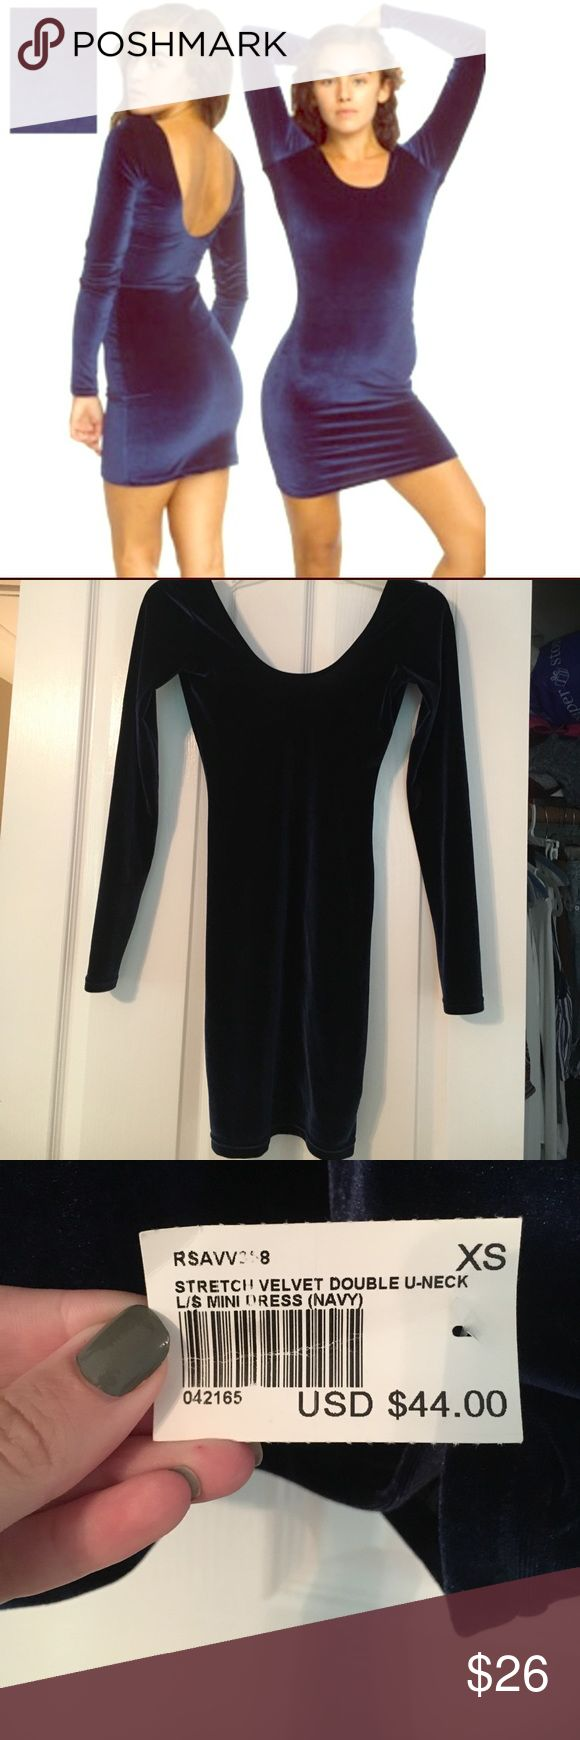 NWT American Apparel Blue Velvet Bodycon Dress Very flattering velvet bodycon dress from American Apparel. NWT Size XS American Apparel Dresses Mini